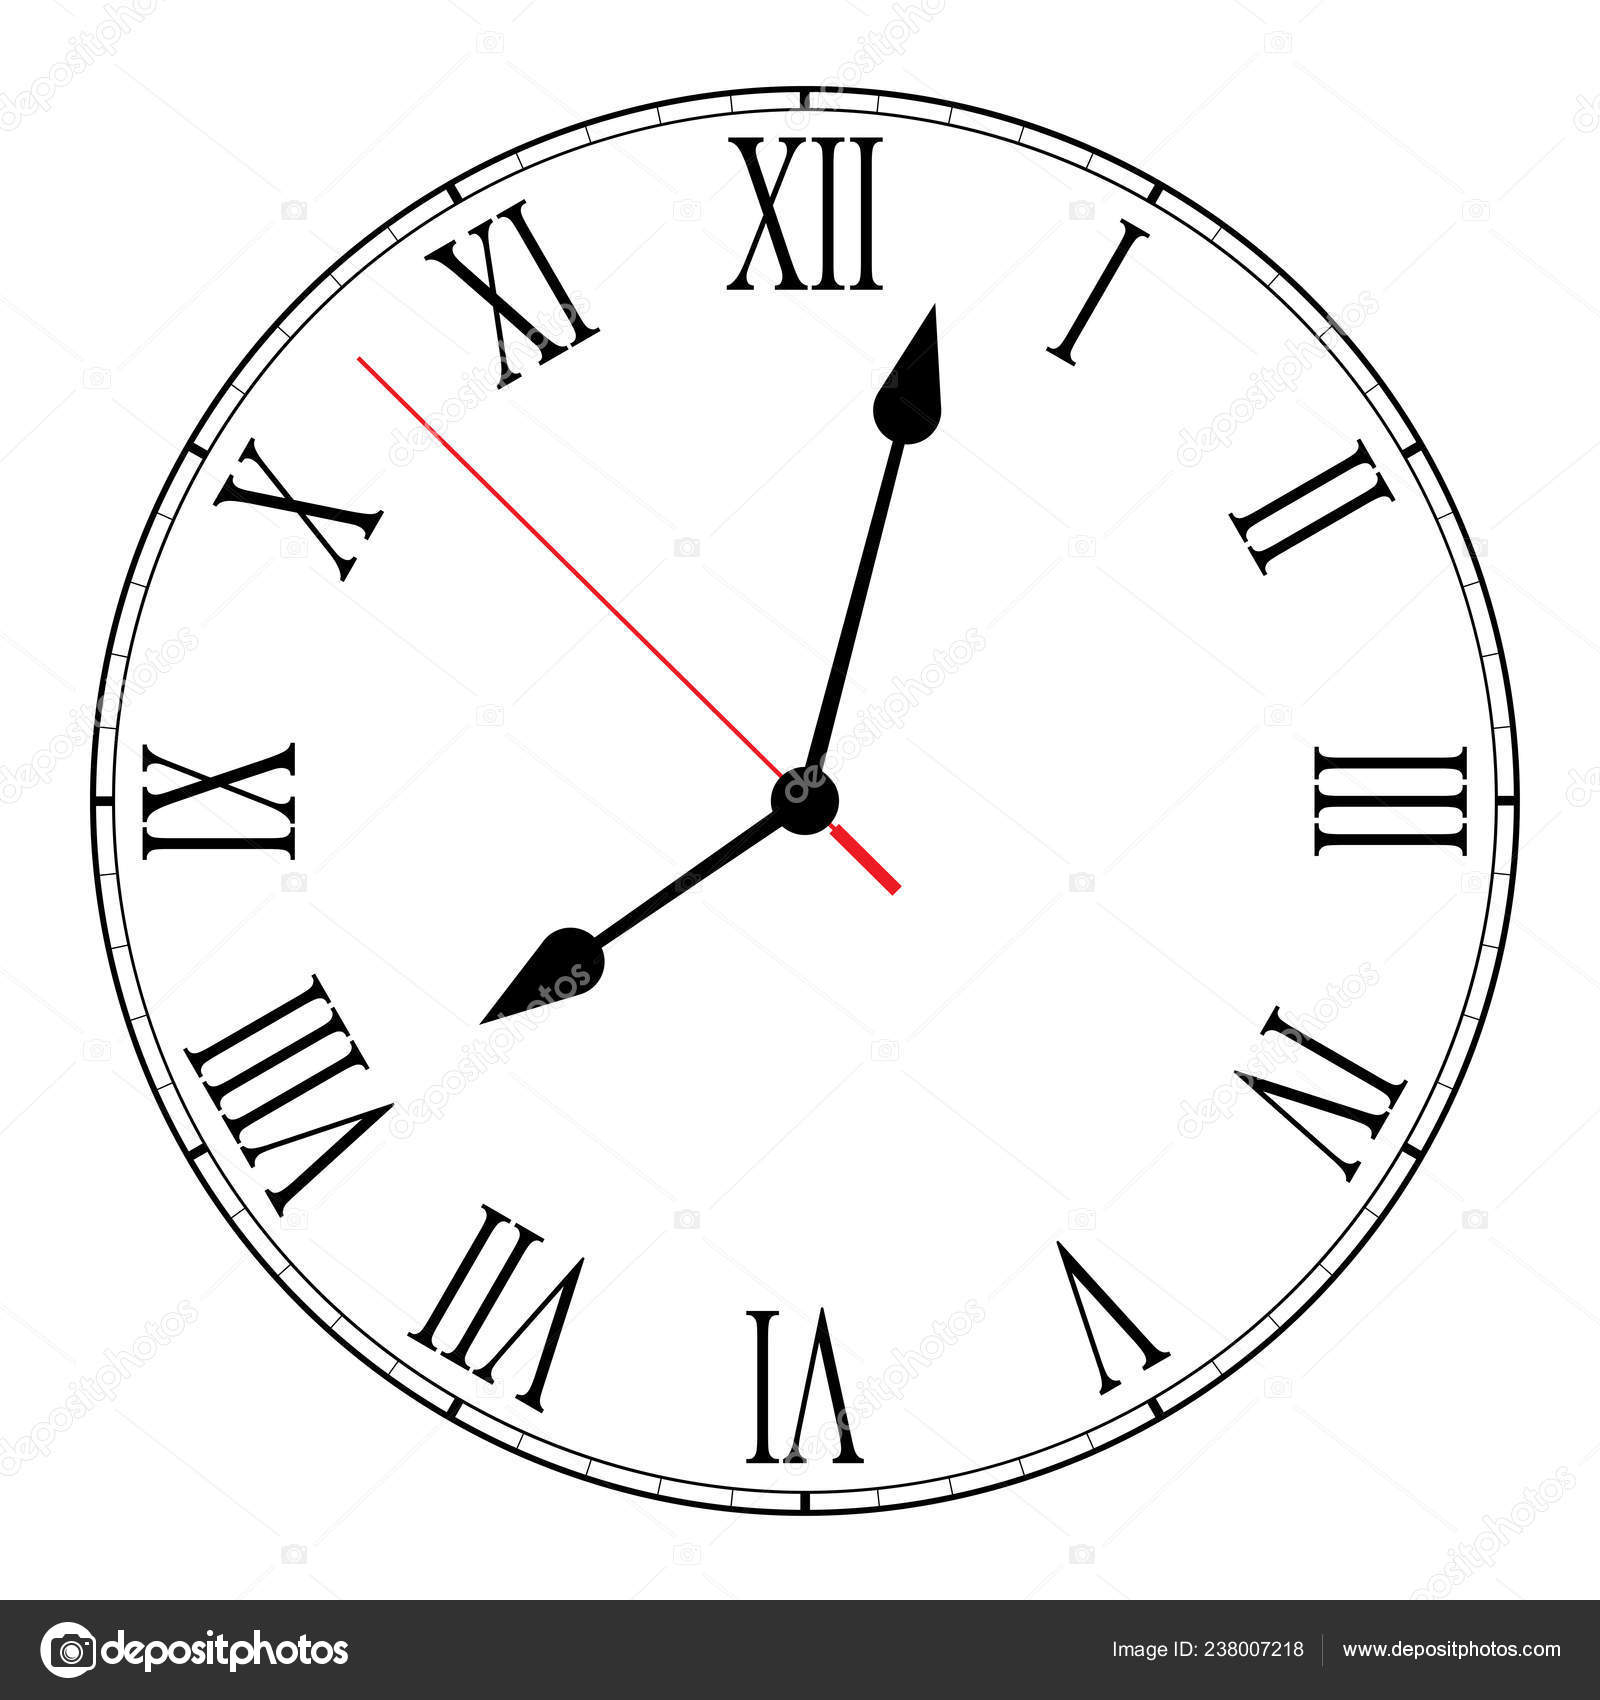 image about Printable Clock Face With Hands identify Printable clock experience roman numerals Vector Case in point